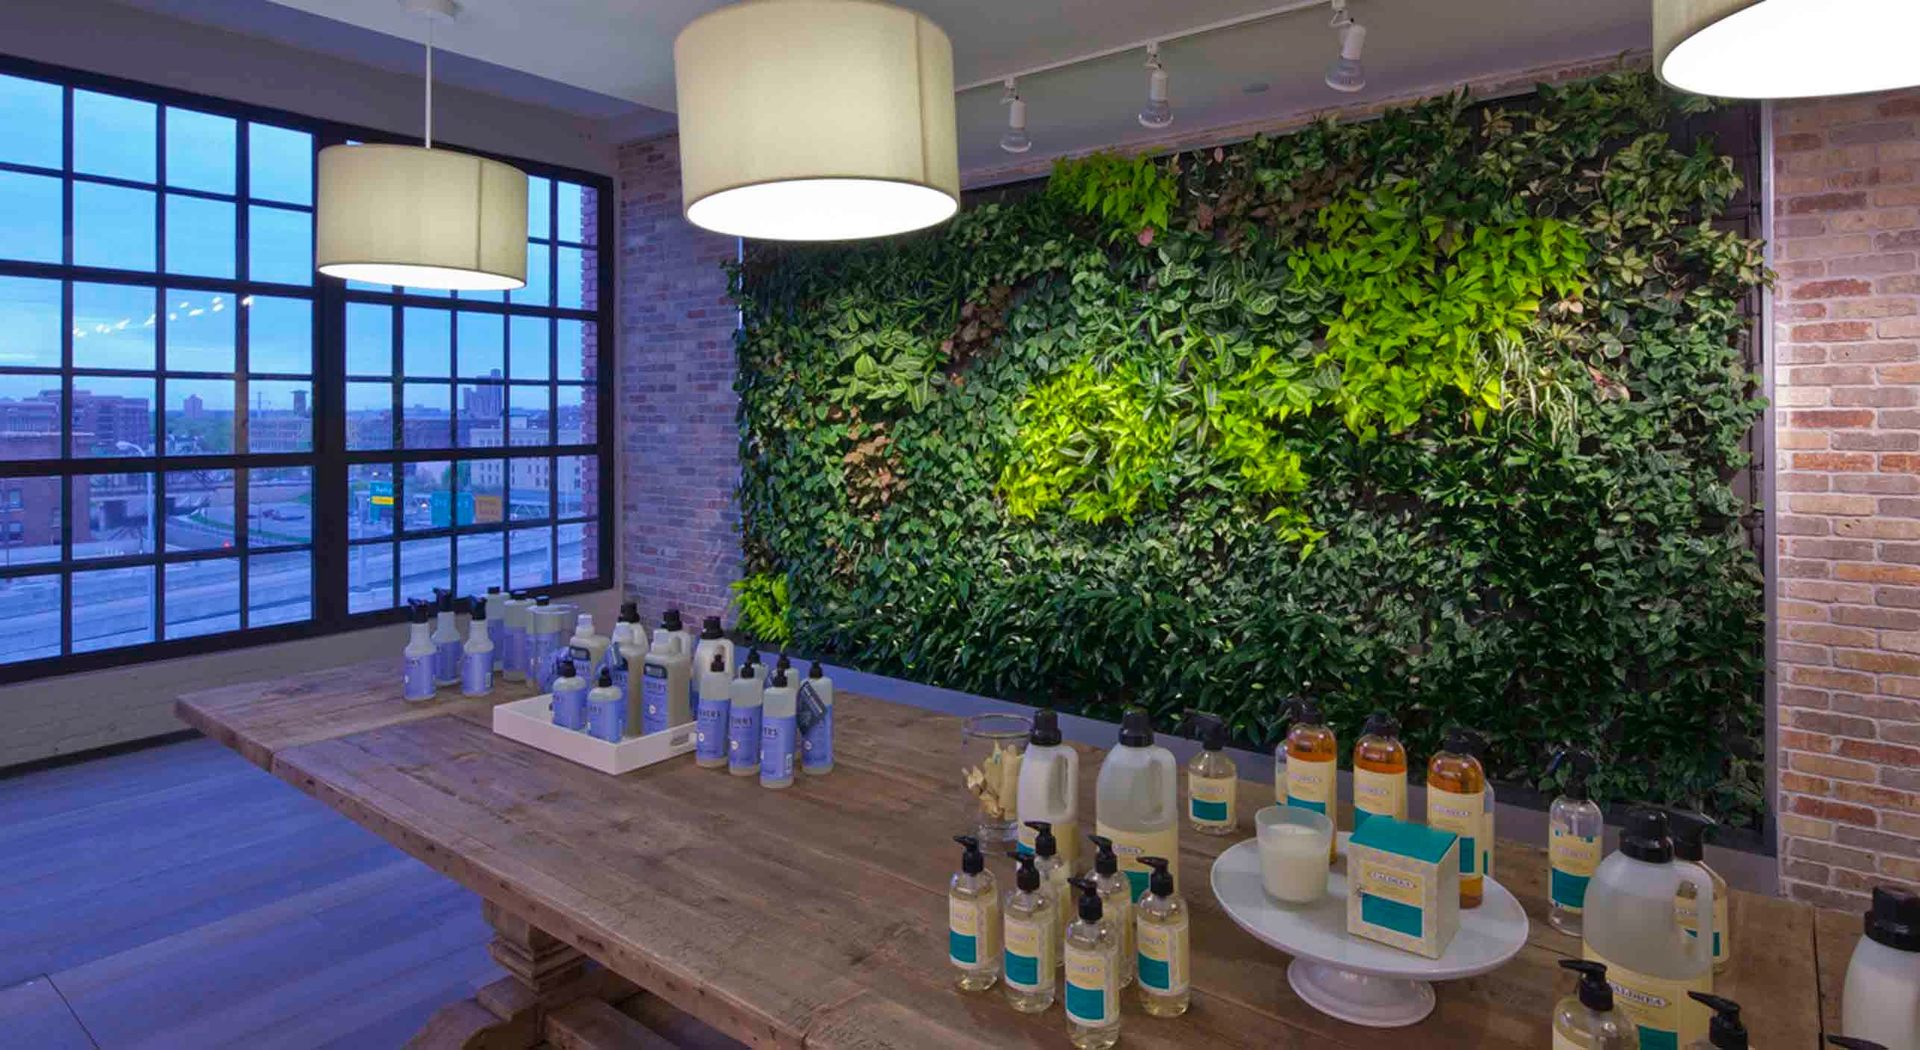 Shown here is a retail space that utilized McCaren Designs to construct a plant wall within their store.